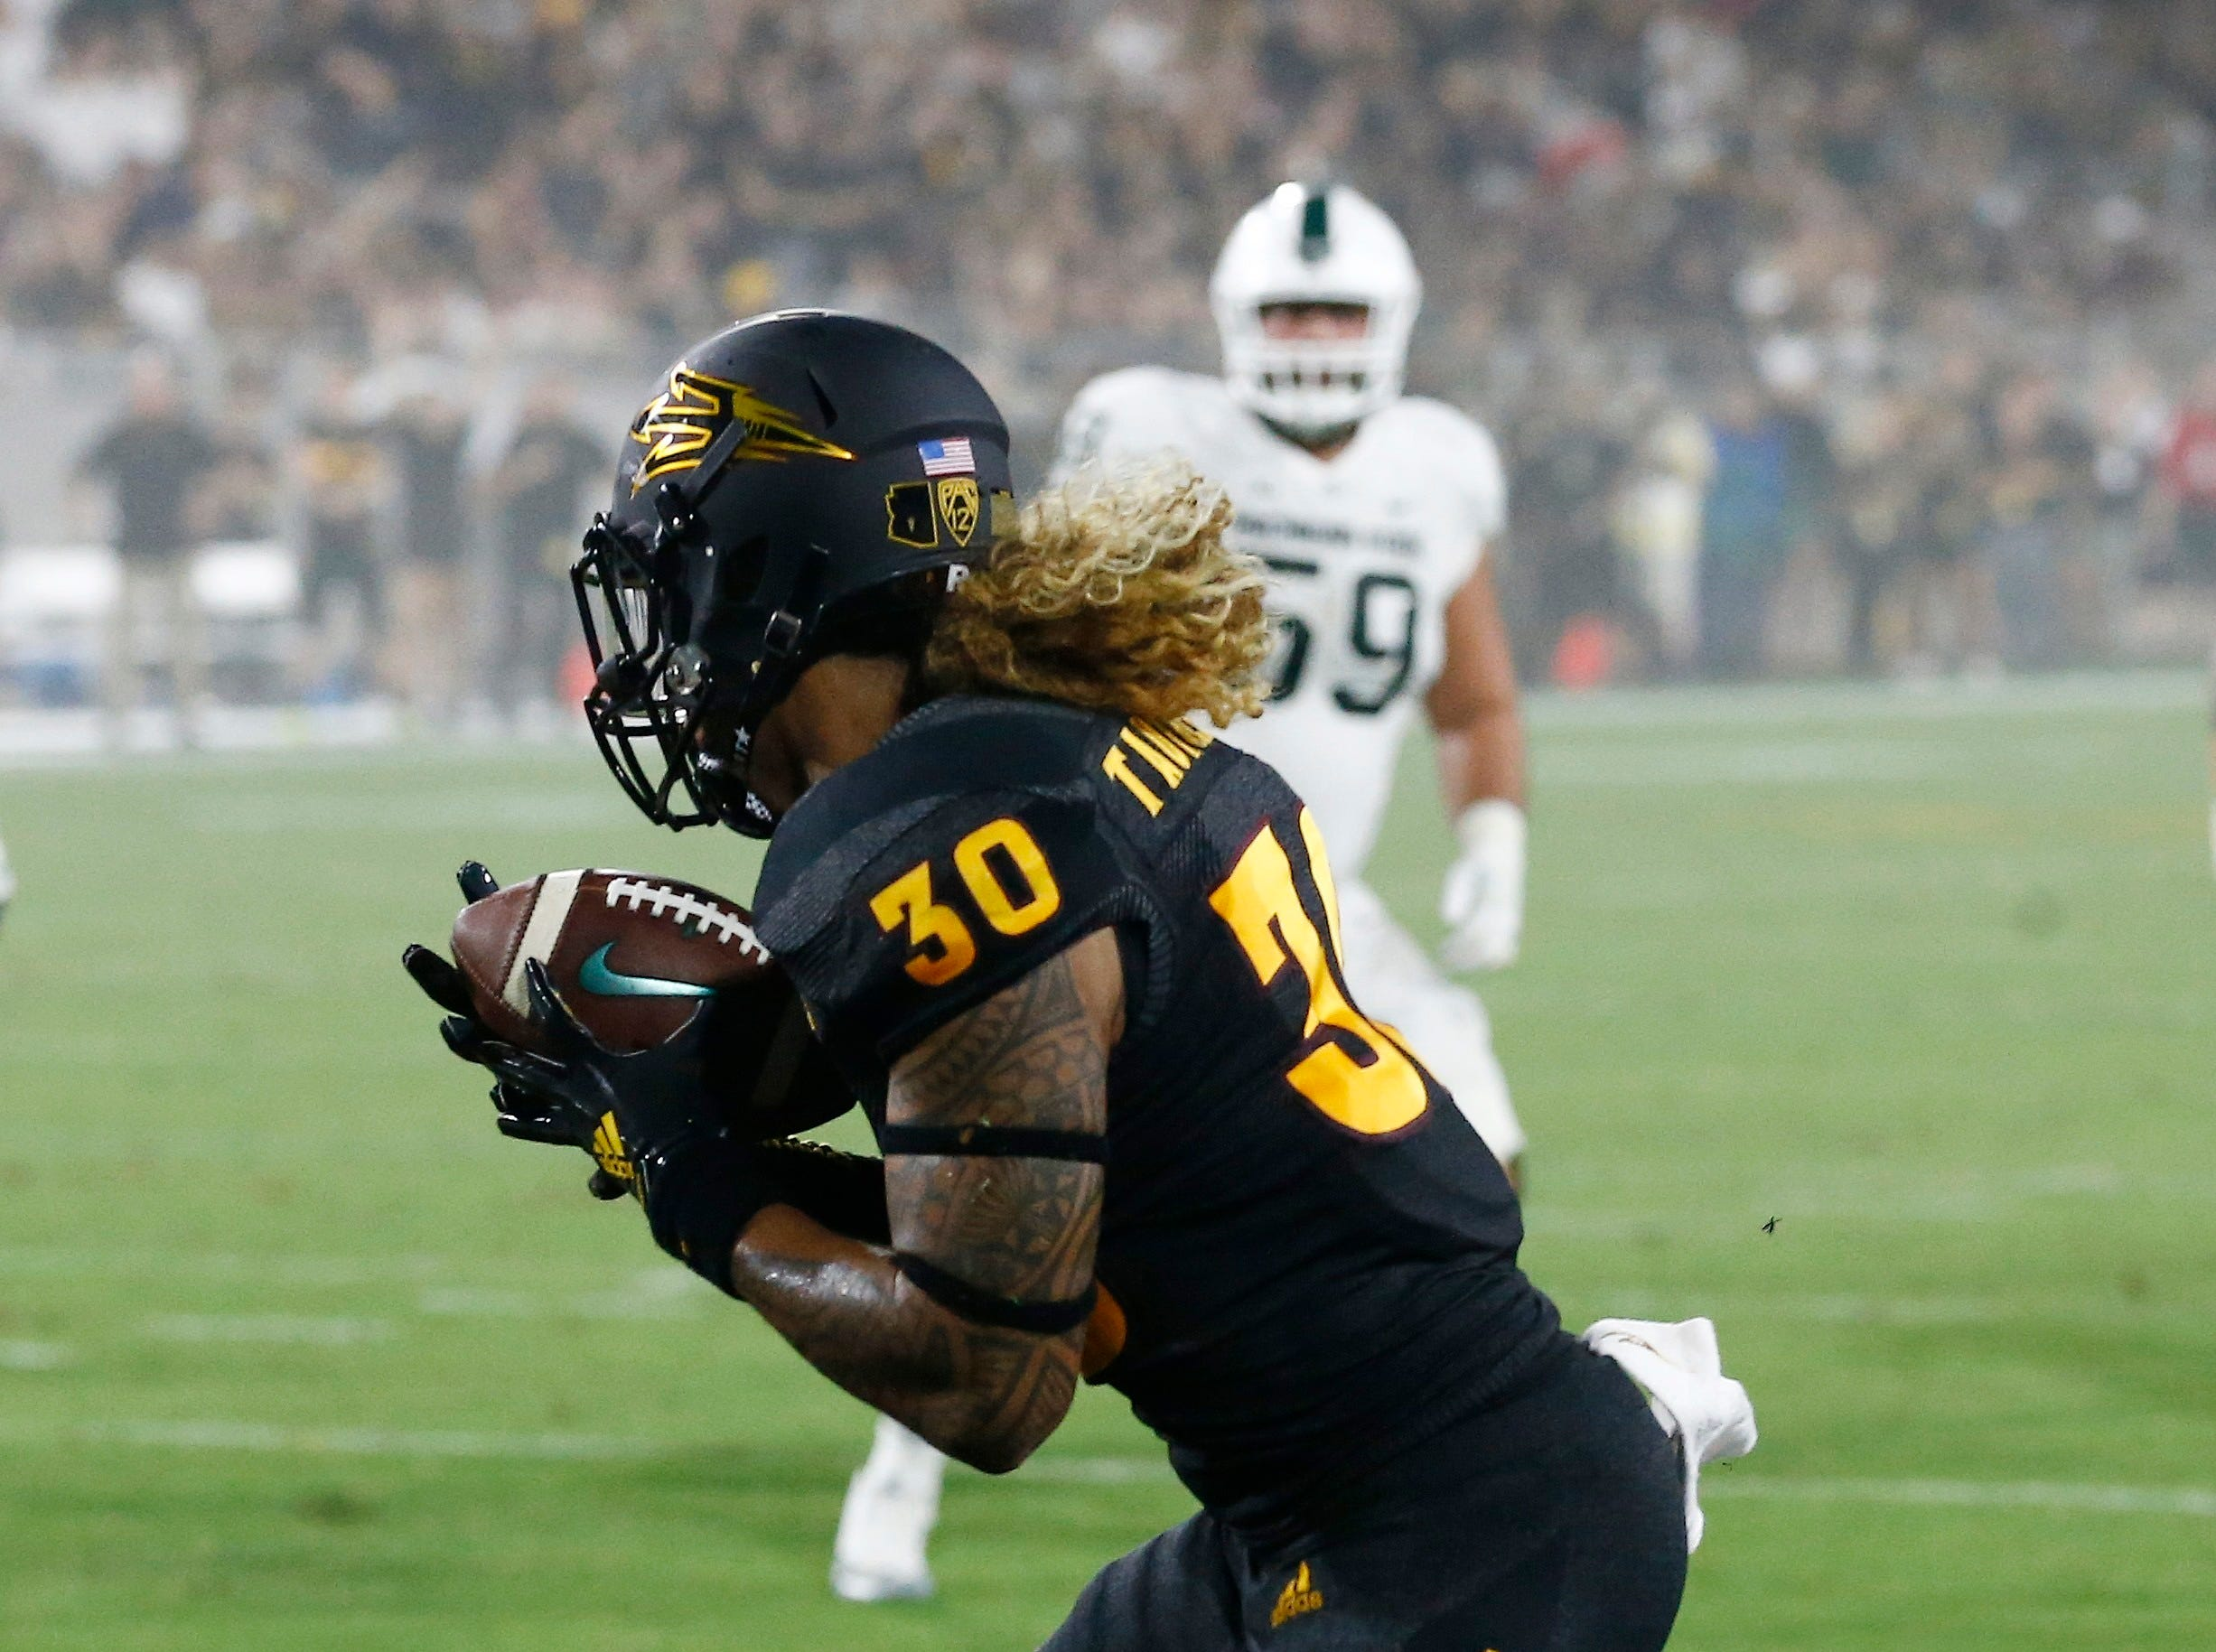 Arizona State defensive back Dasmond Tautalatasi (30) intercepts a pass in the end zone during the first half of an NCAA college football game against Michigan State on Saturday, Sept. 8, 2018, in Tempe, Ariz. (AP Photo/Ross D. Franklin)